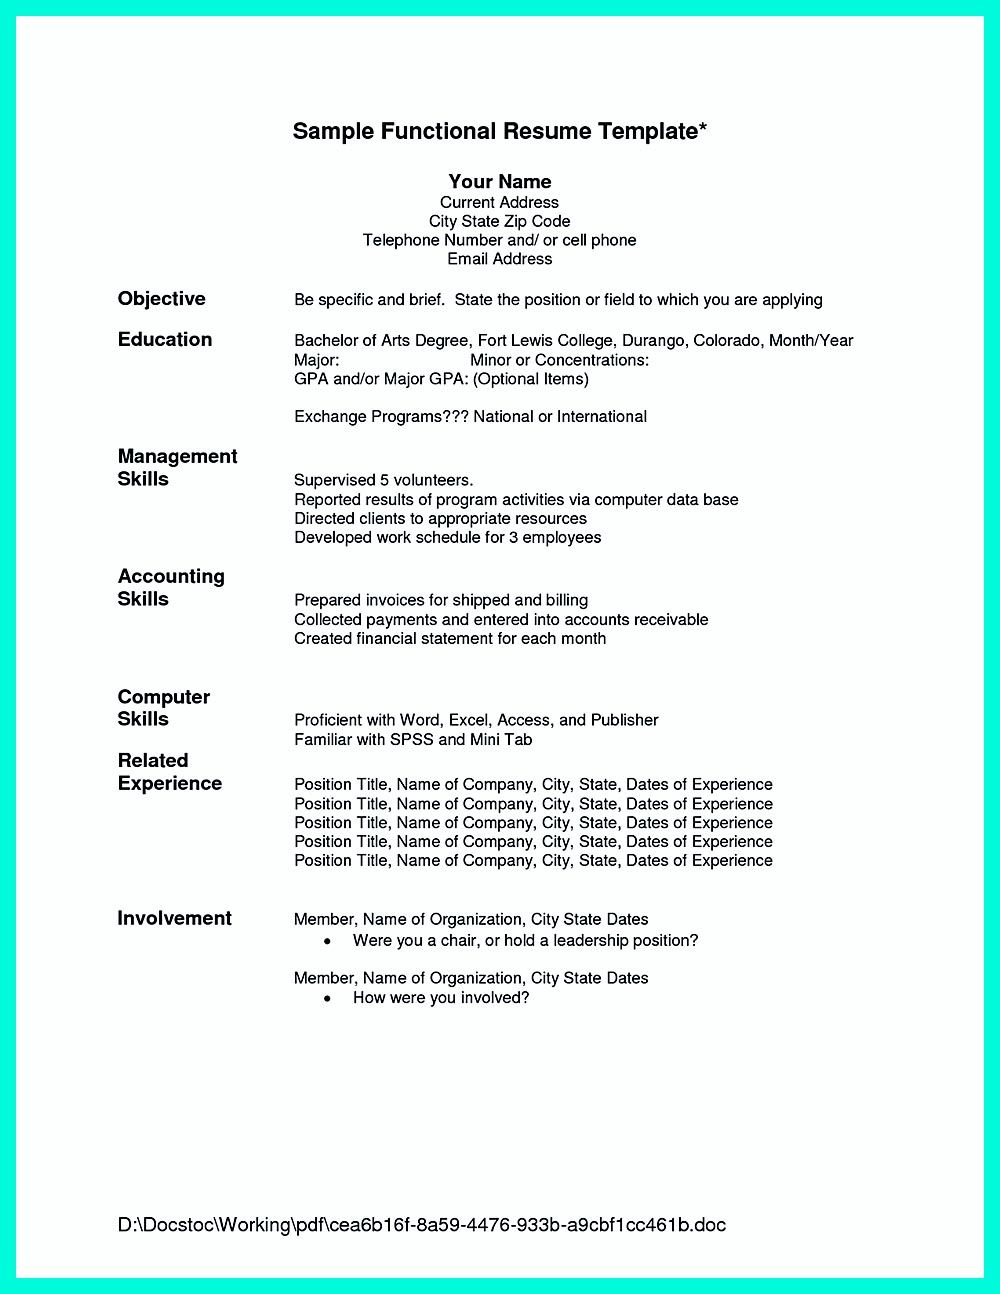 Sample Chronological Resume Chronological Resume Is Neededpeople In Making Them Understand